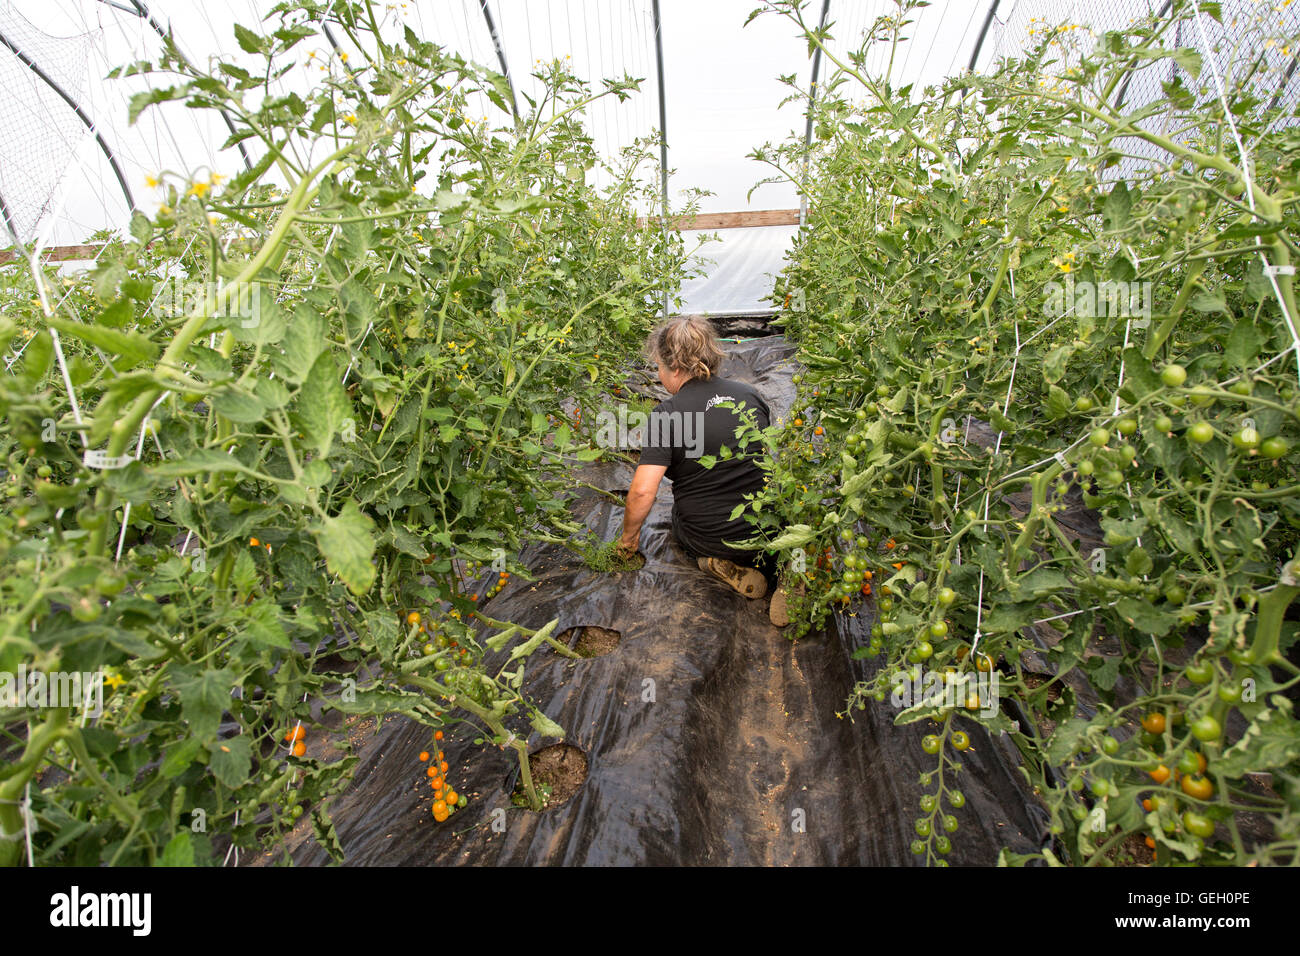 Female farmer, weeding tomato plants in tunnel. - Stock Image